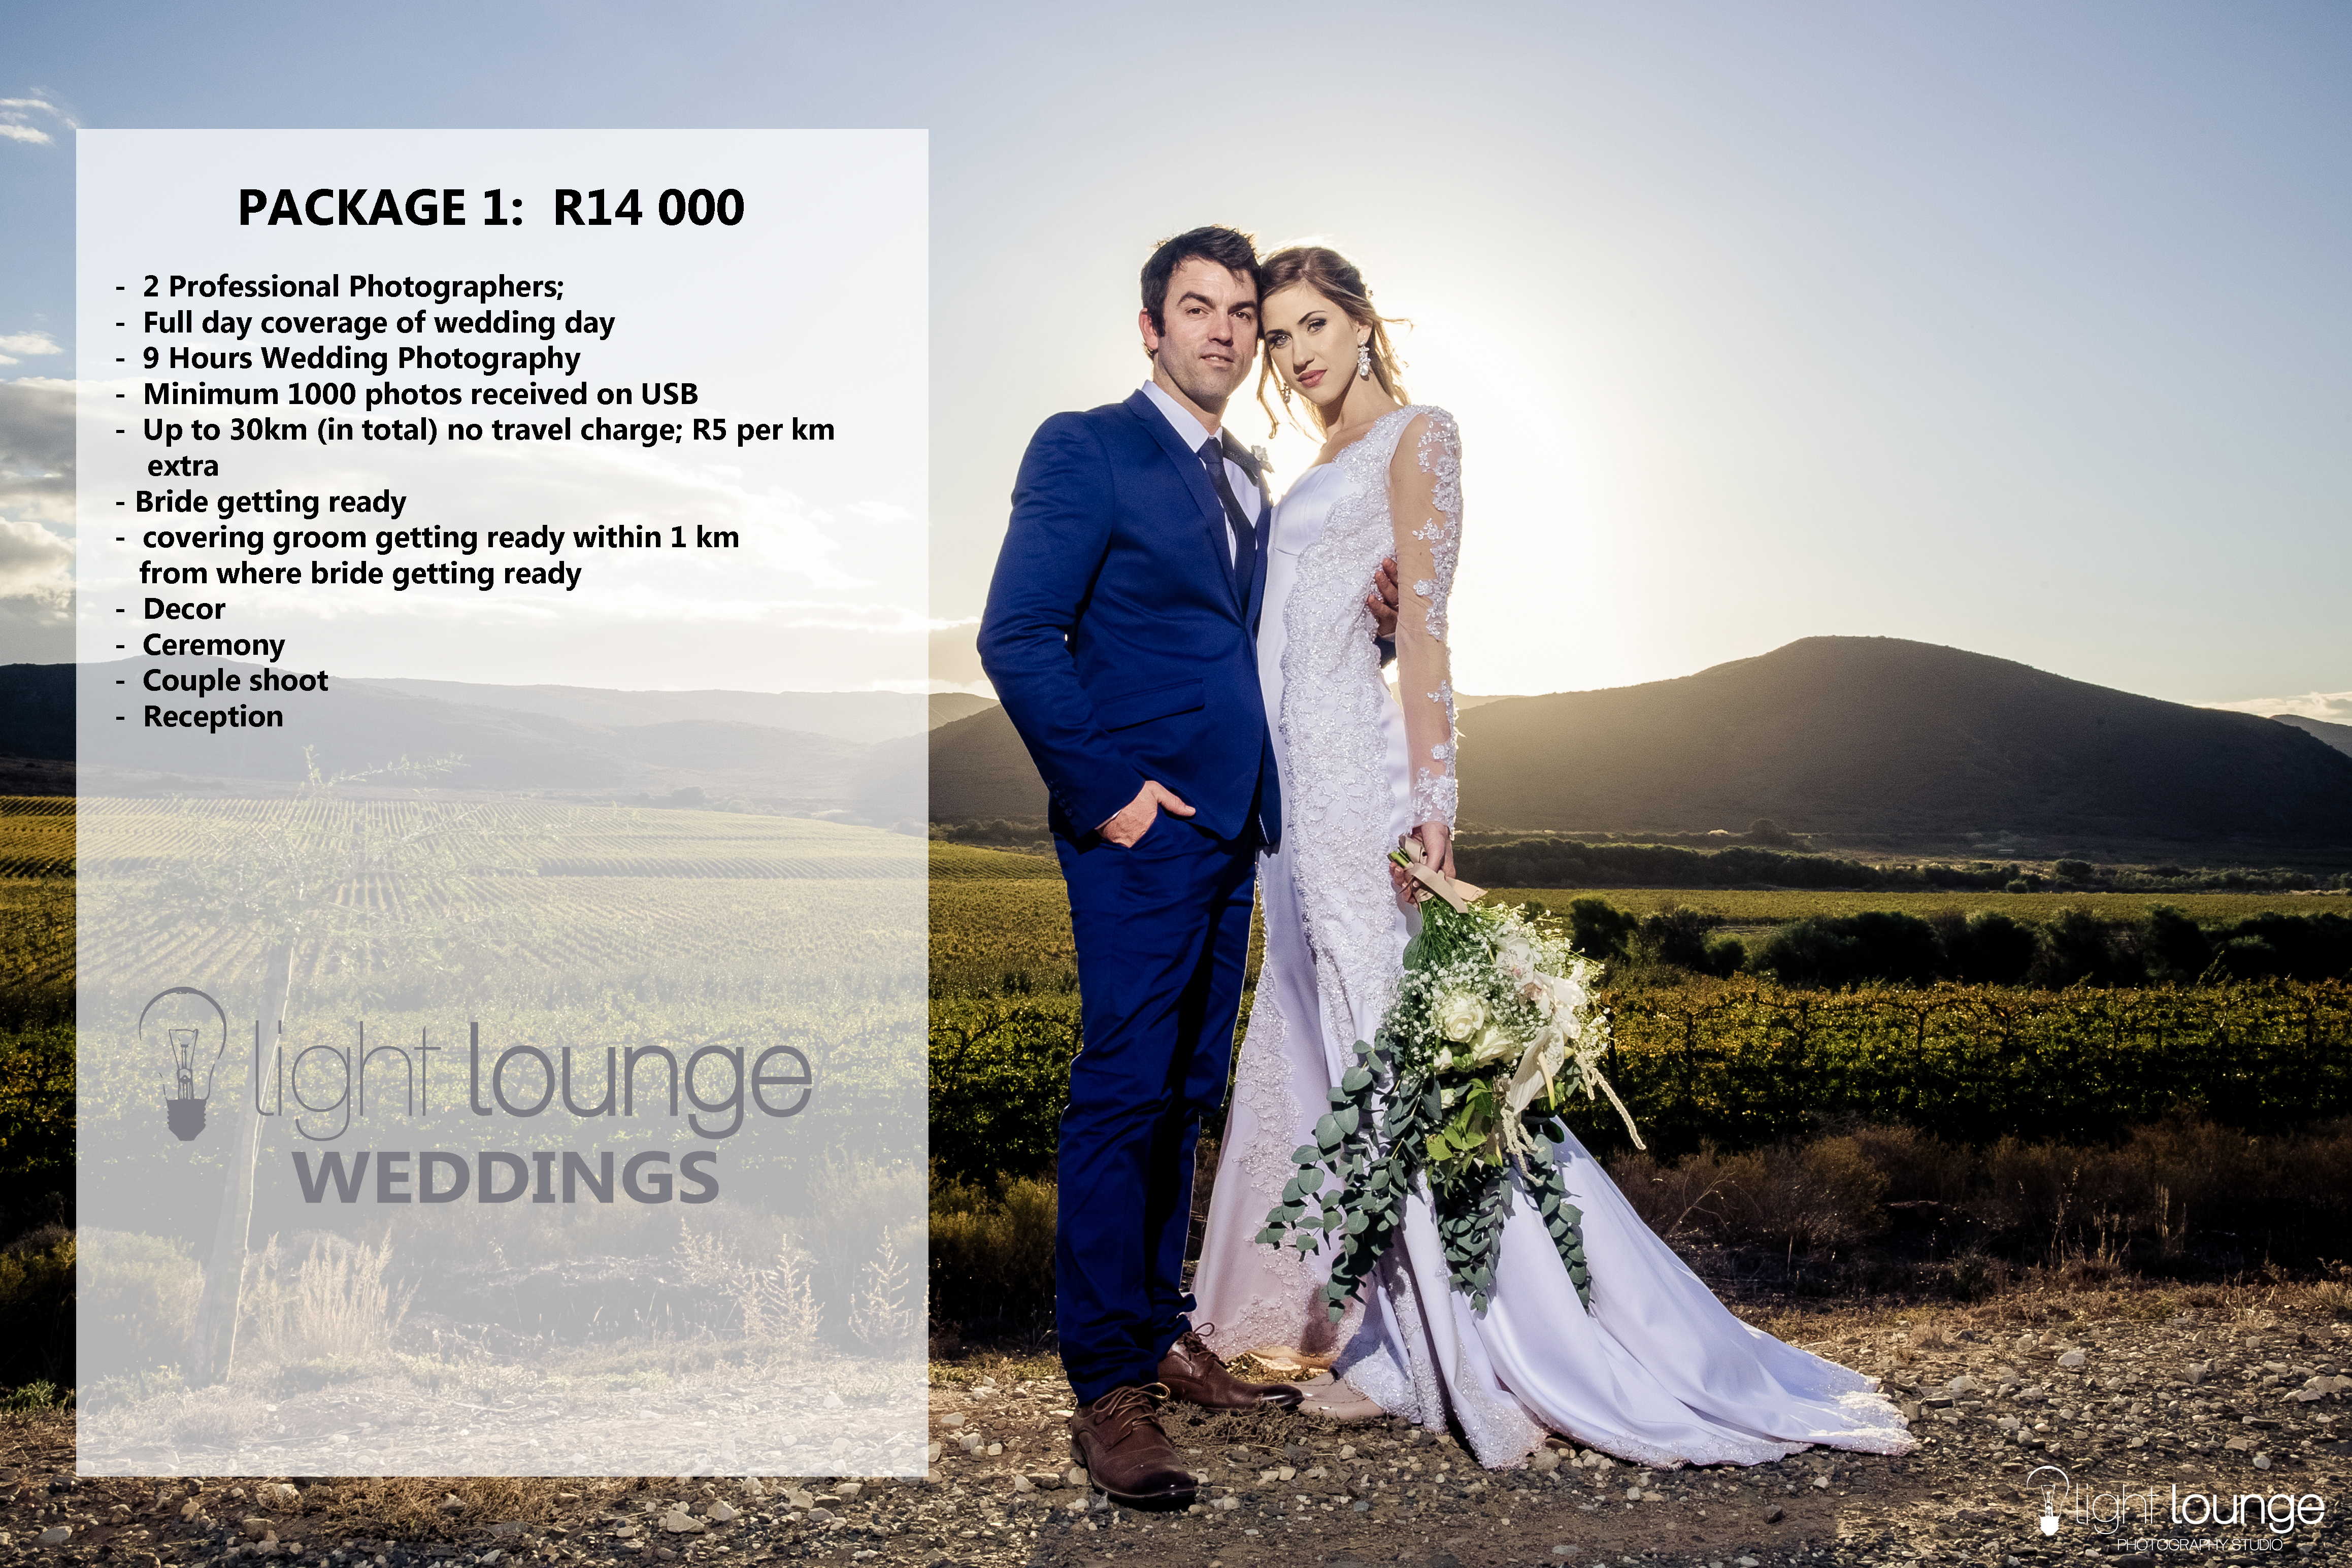 Wedding Photography Packages.Pricing 2018 2019 Nelis Engelbrecht